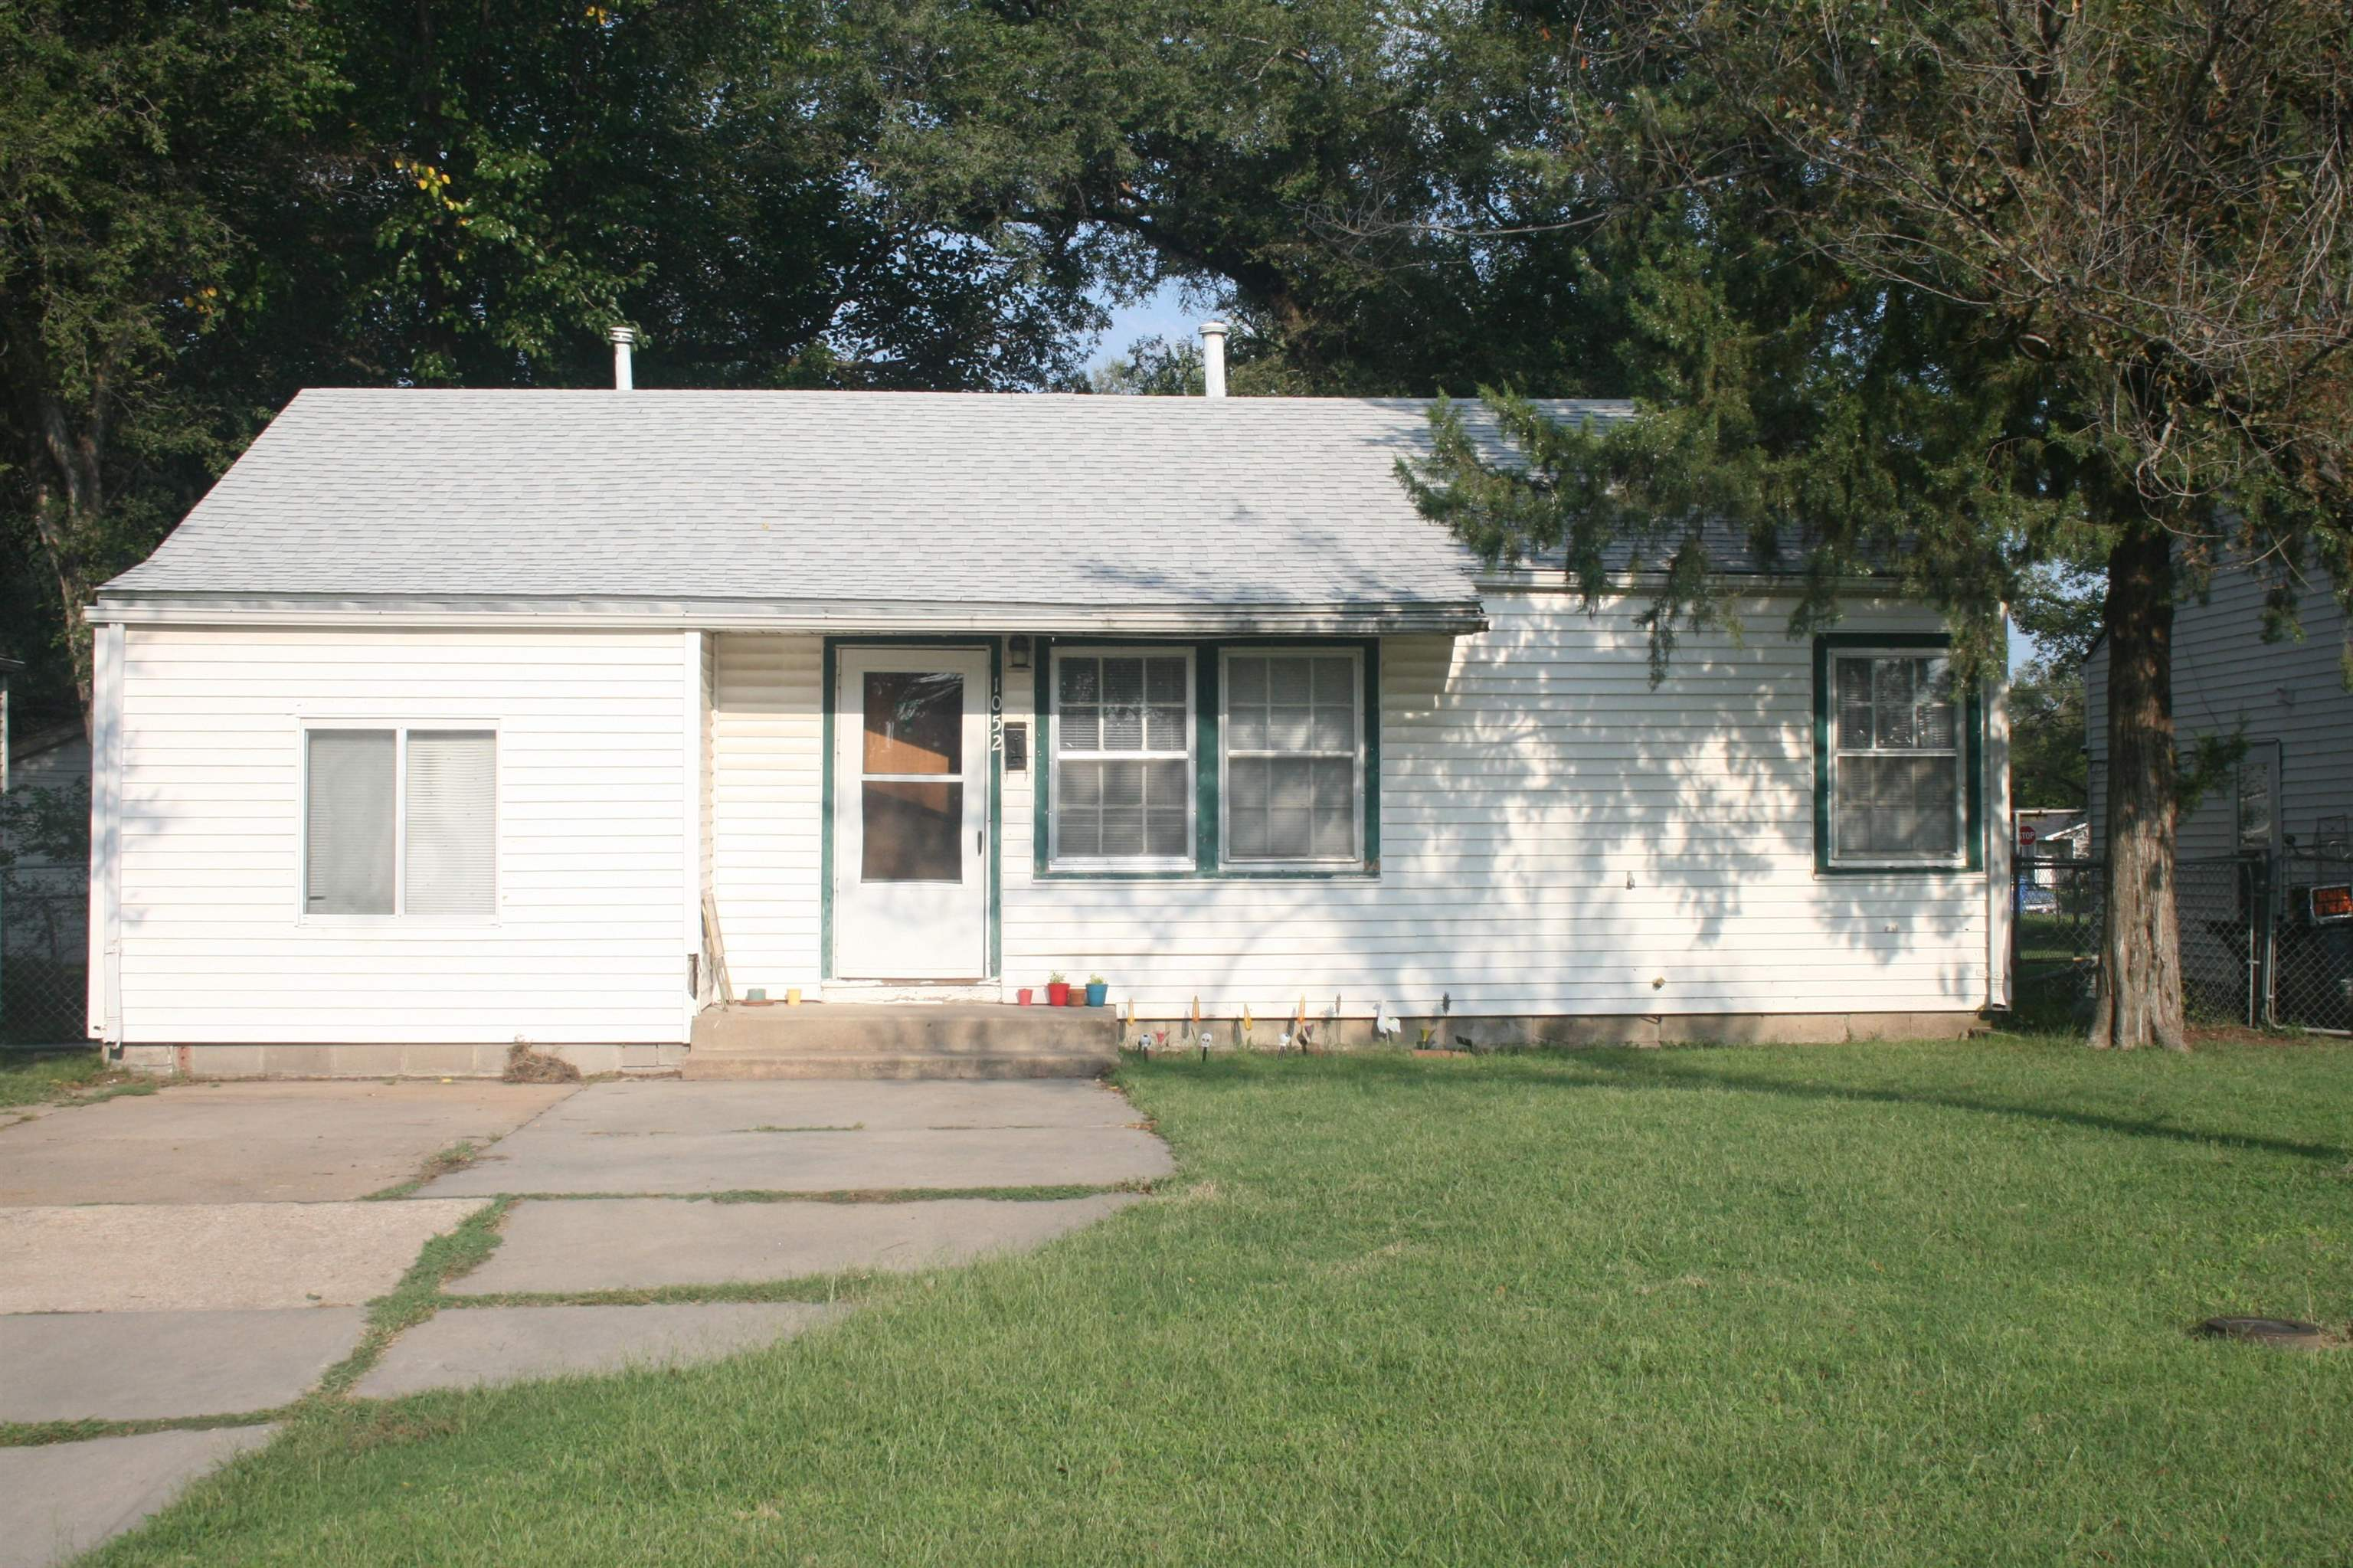 Easy access to Kellogg, close to downtown and major shopping area.  Also, very close to Kansas Newma